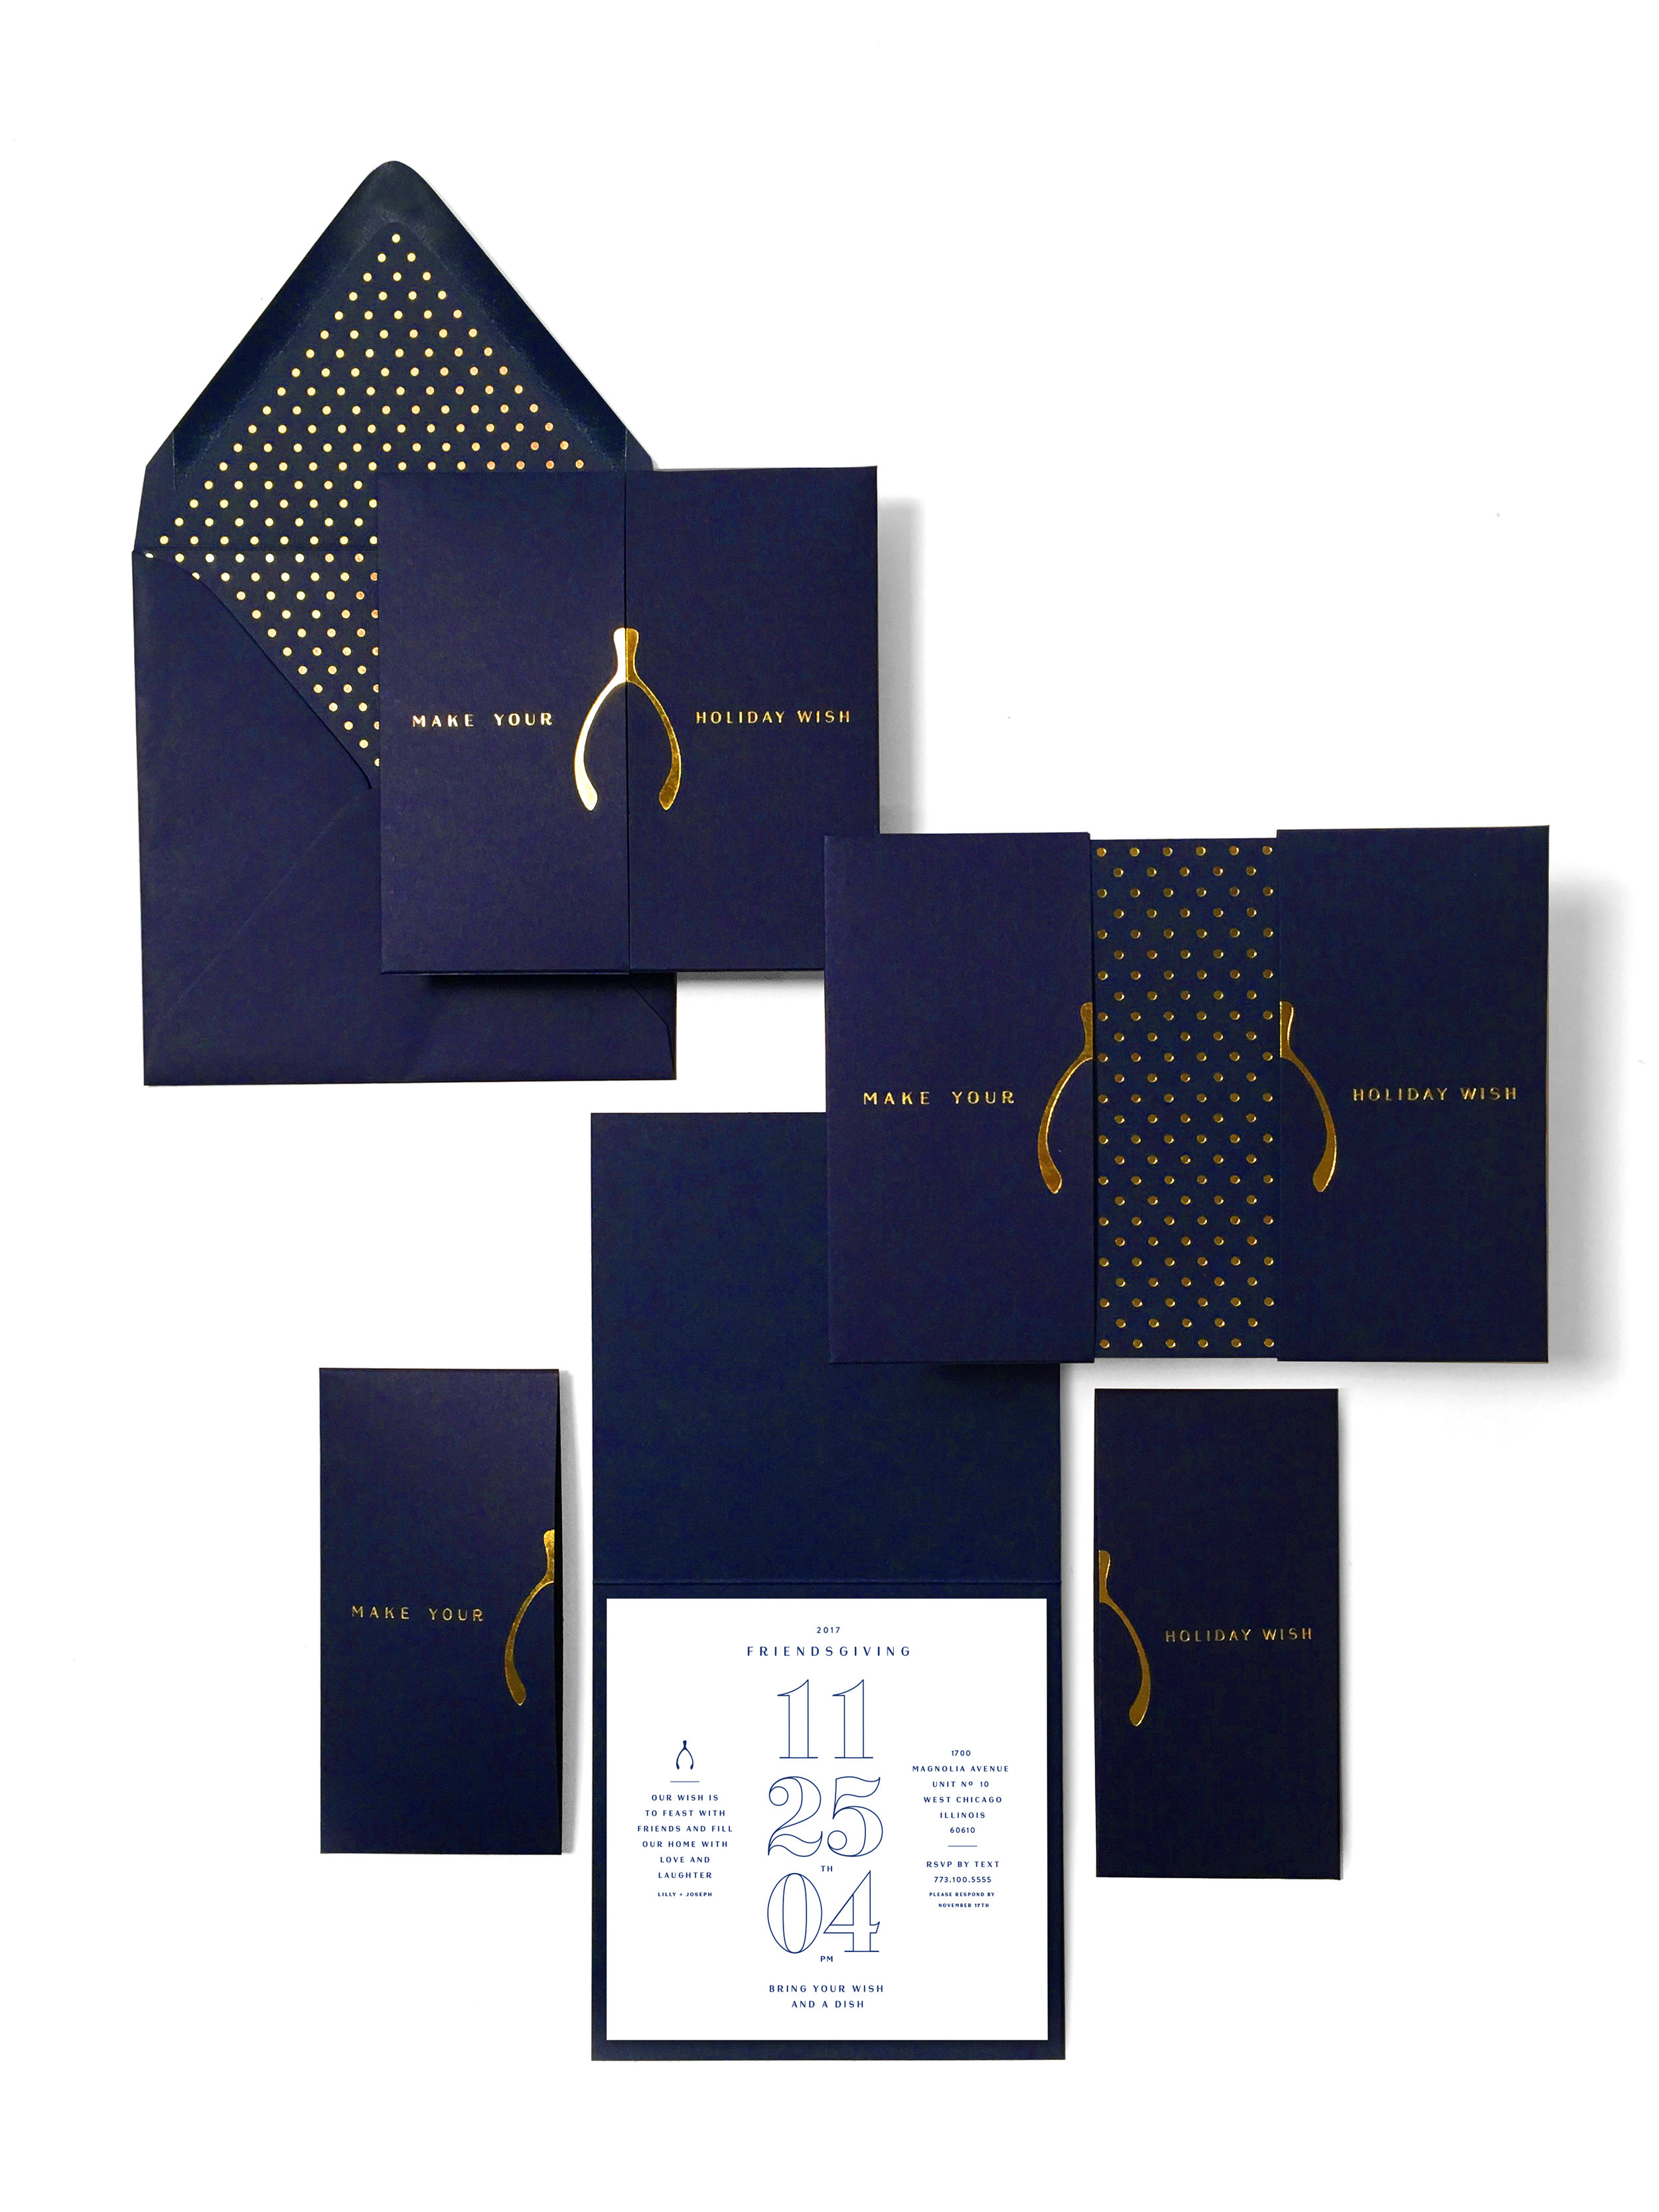 EMILY VACA | FRIENDSGIVING INVITATION | GOLD AND NAVY WISHBONE